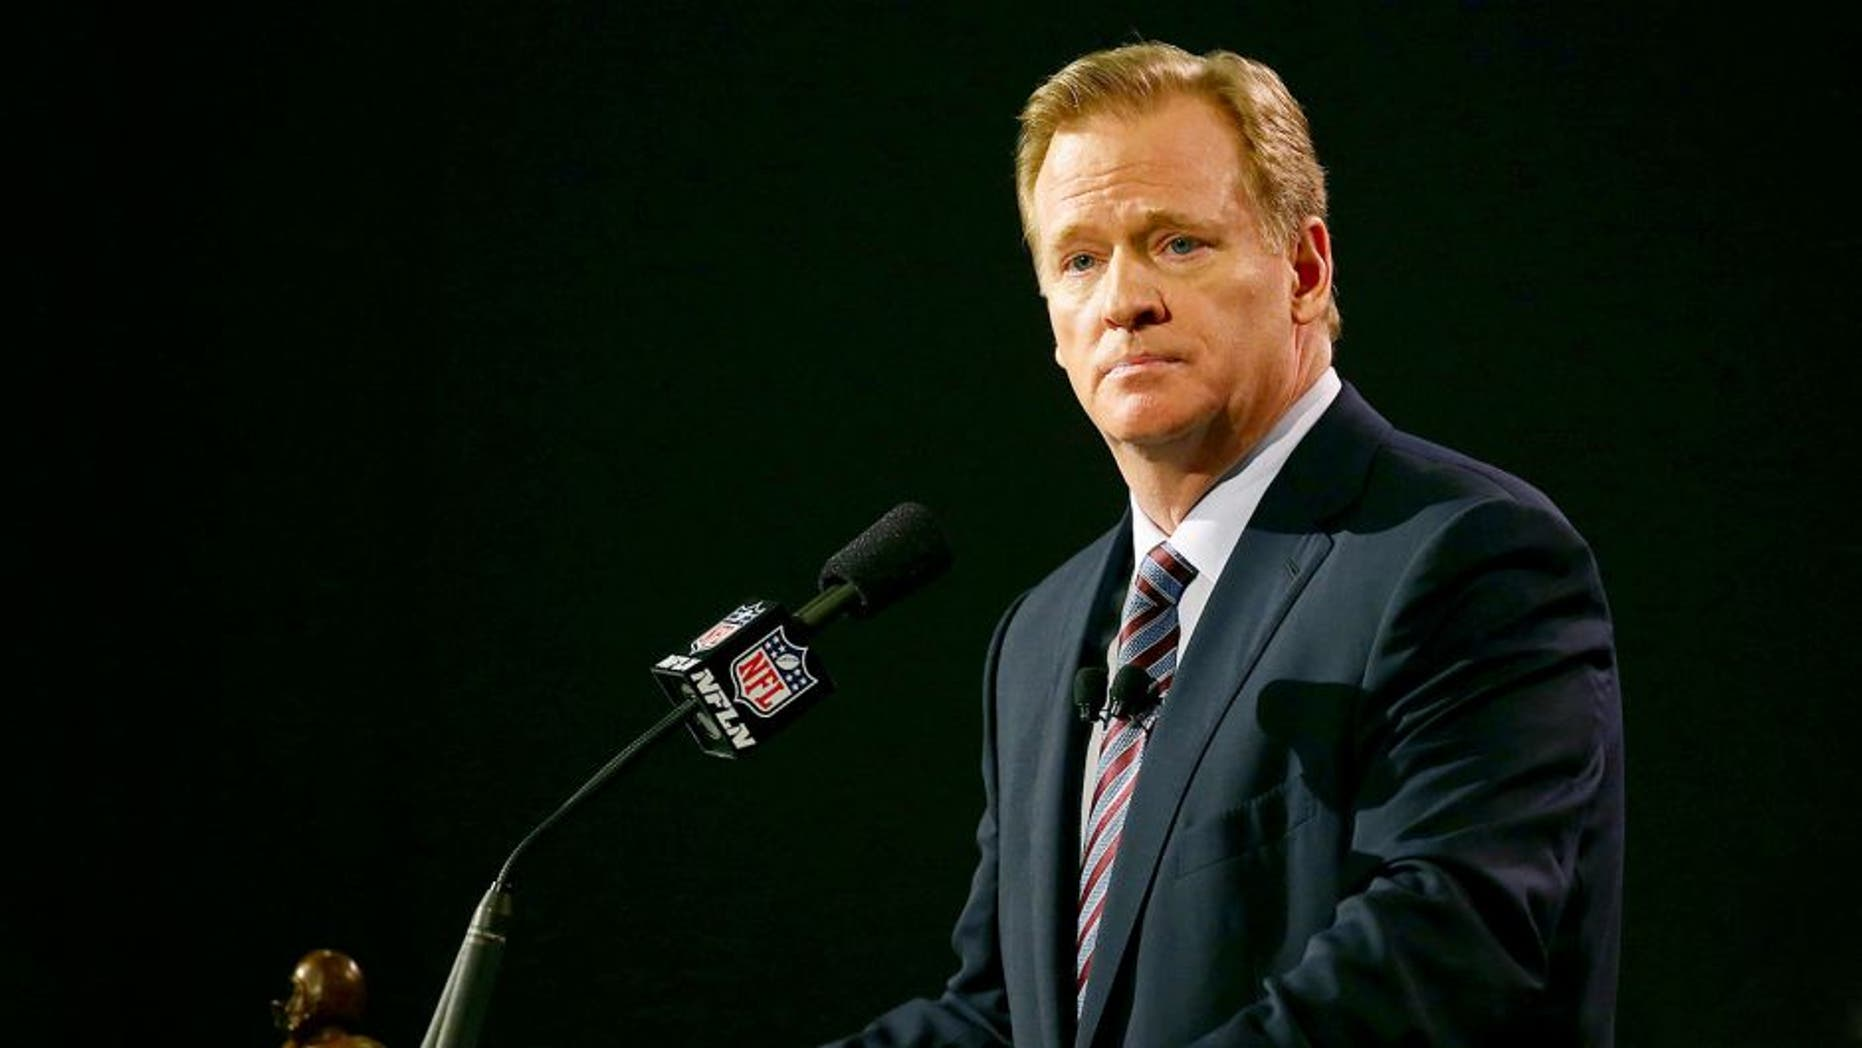 PHOENIX, AZ - JANUARY 30: NFL Commissioner Roger Goodell speaks during a press conference prior to the upcoming Super Bowl XLIX at Phoenix Convention Center on January 30, 2015 in Phoenix, Arizona. (Photo by Mike Lawrie/Getty Images)